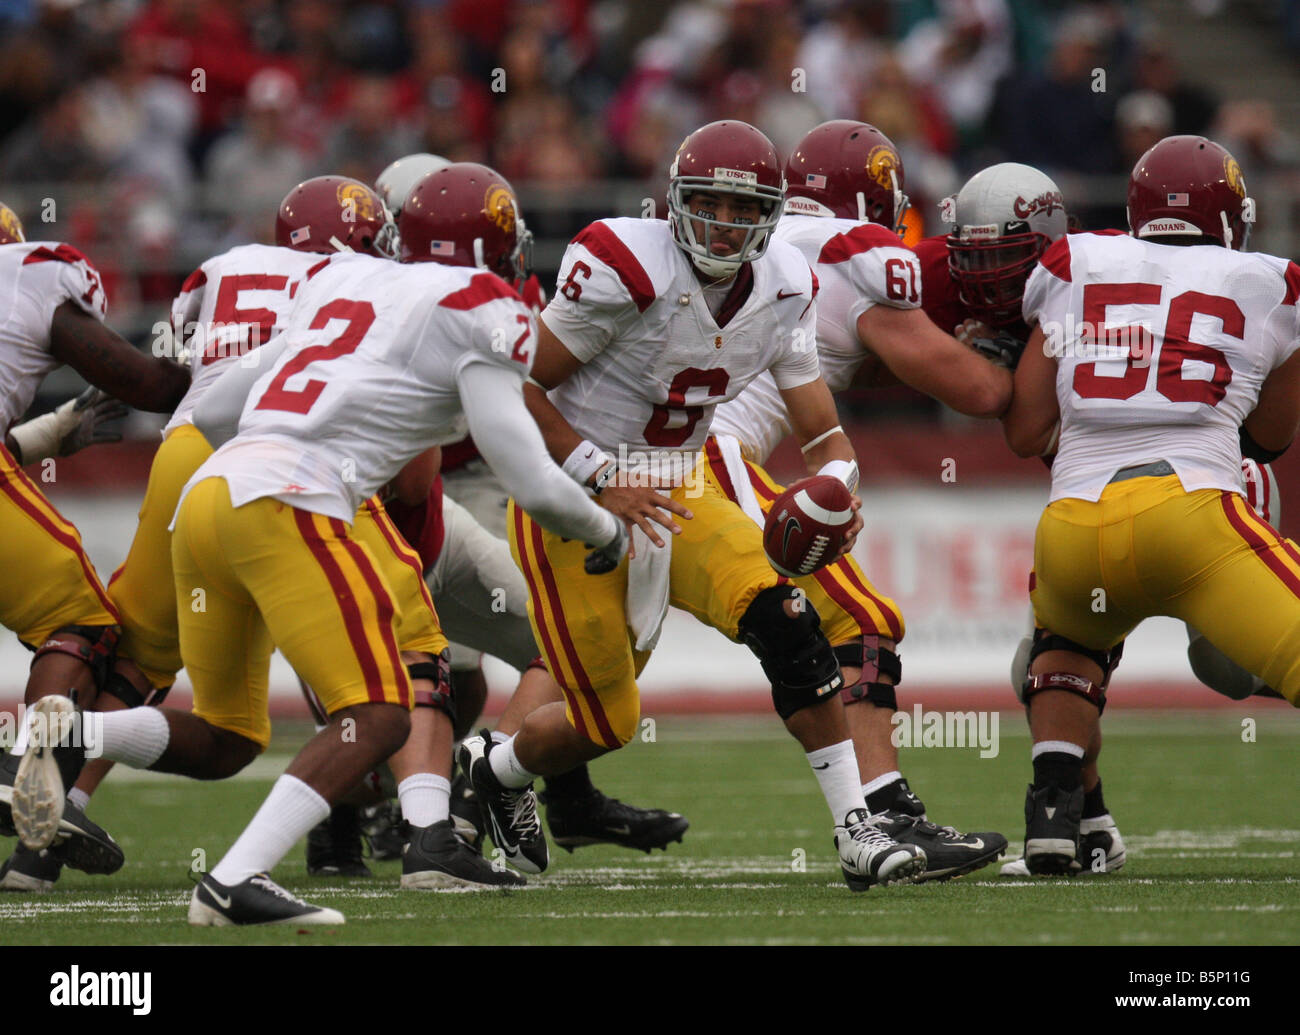 USC quarterback, Mark Sanchez, prepares to hand off to C.J. Gable during the Trojans Pac-10 football game with Washington - Stock Image